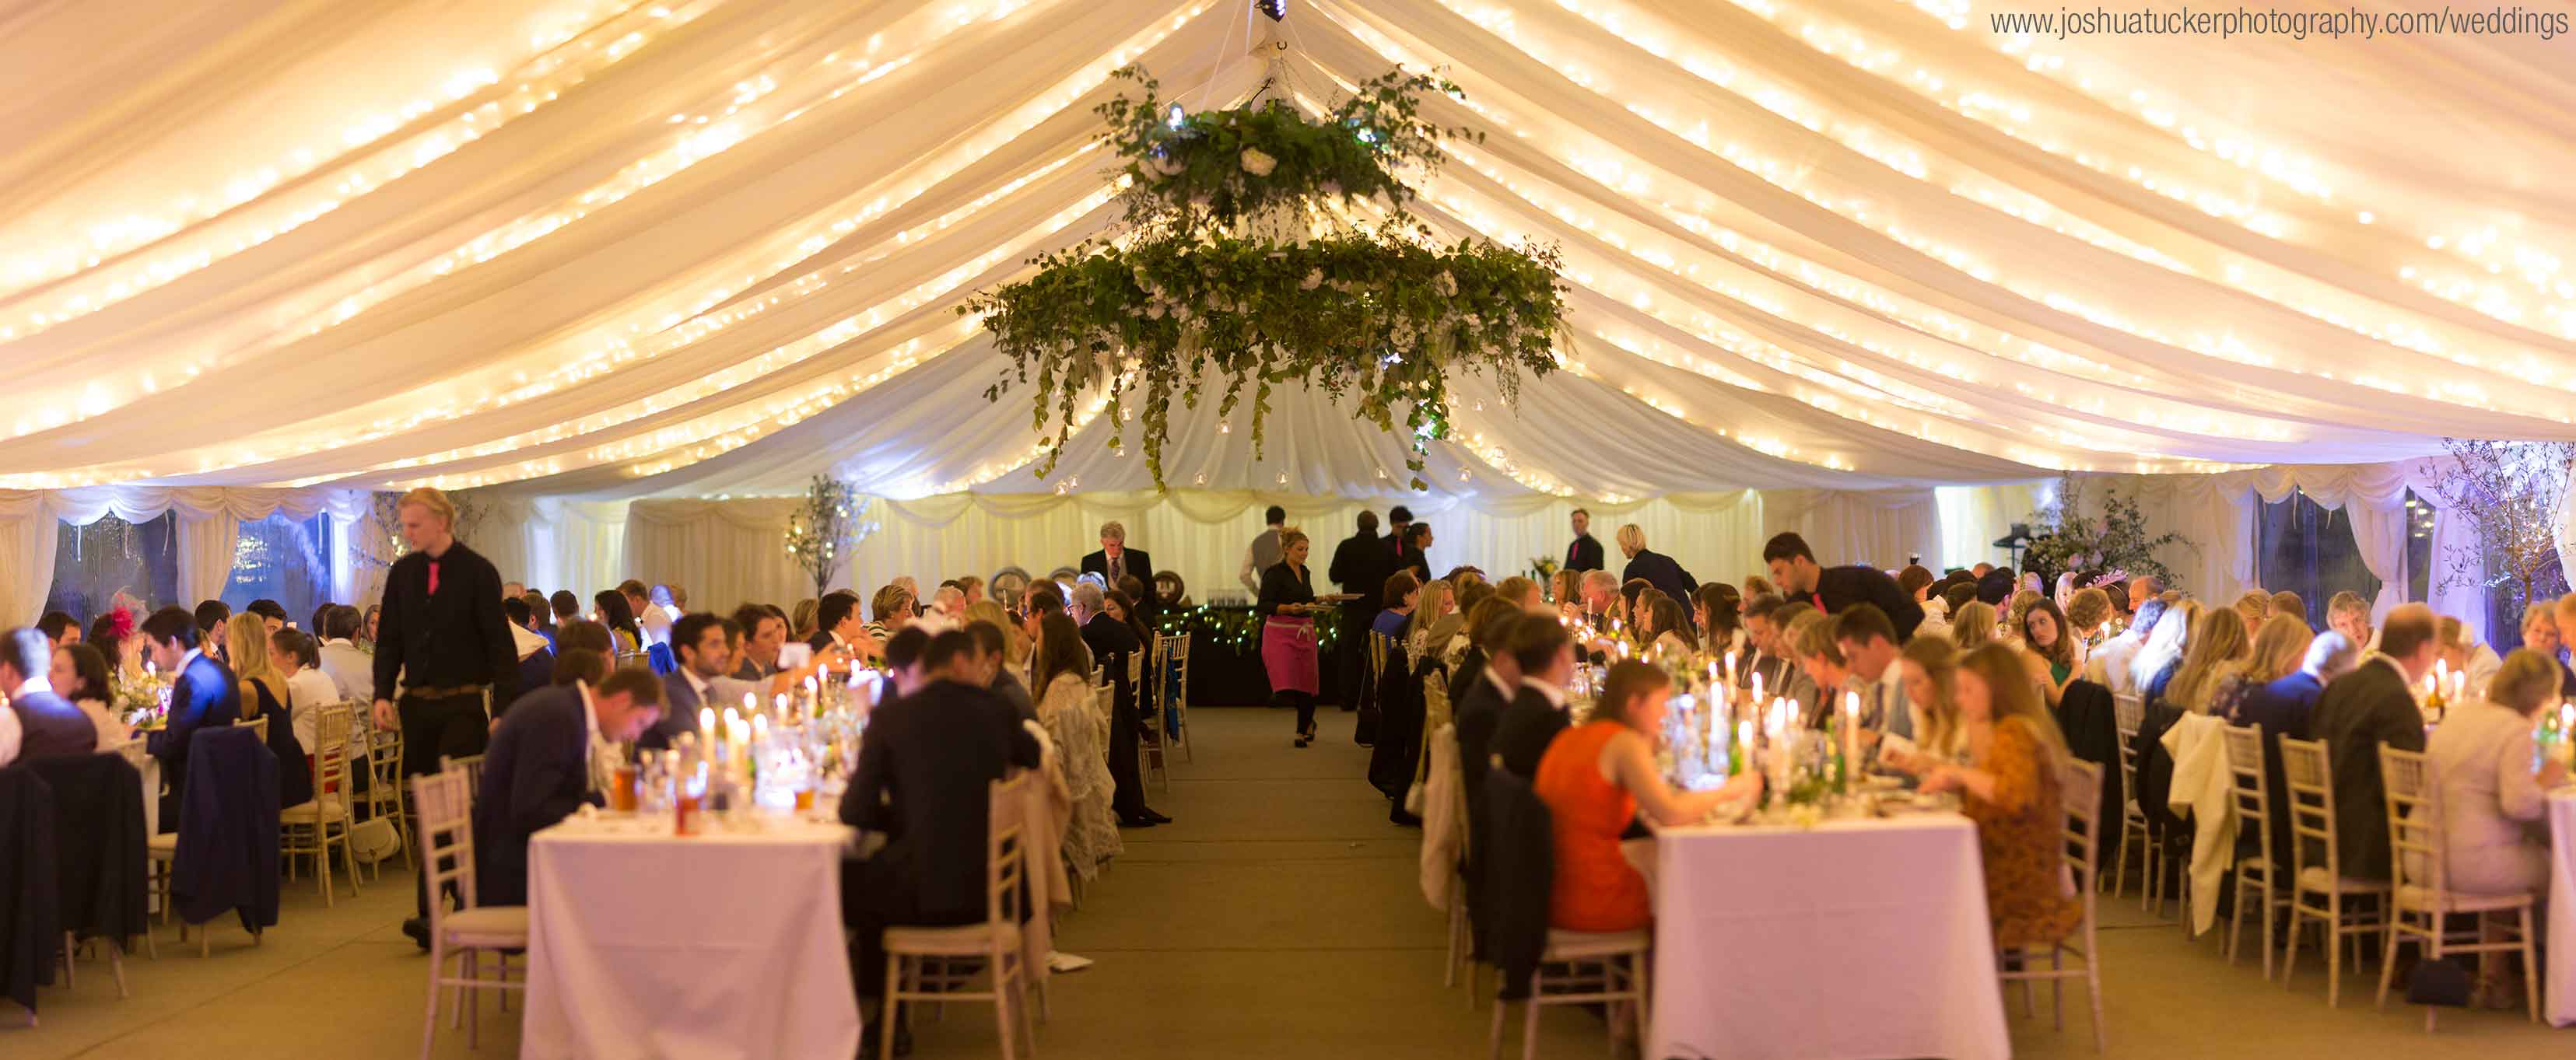 Carron marquees wedding marquee hire based out of surrey carron marquees marquee hire surrey junglespirit Images